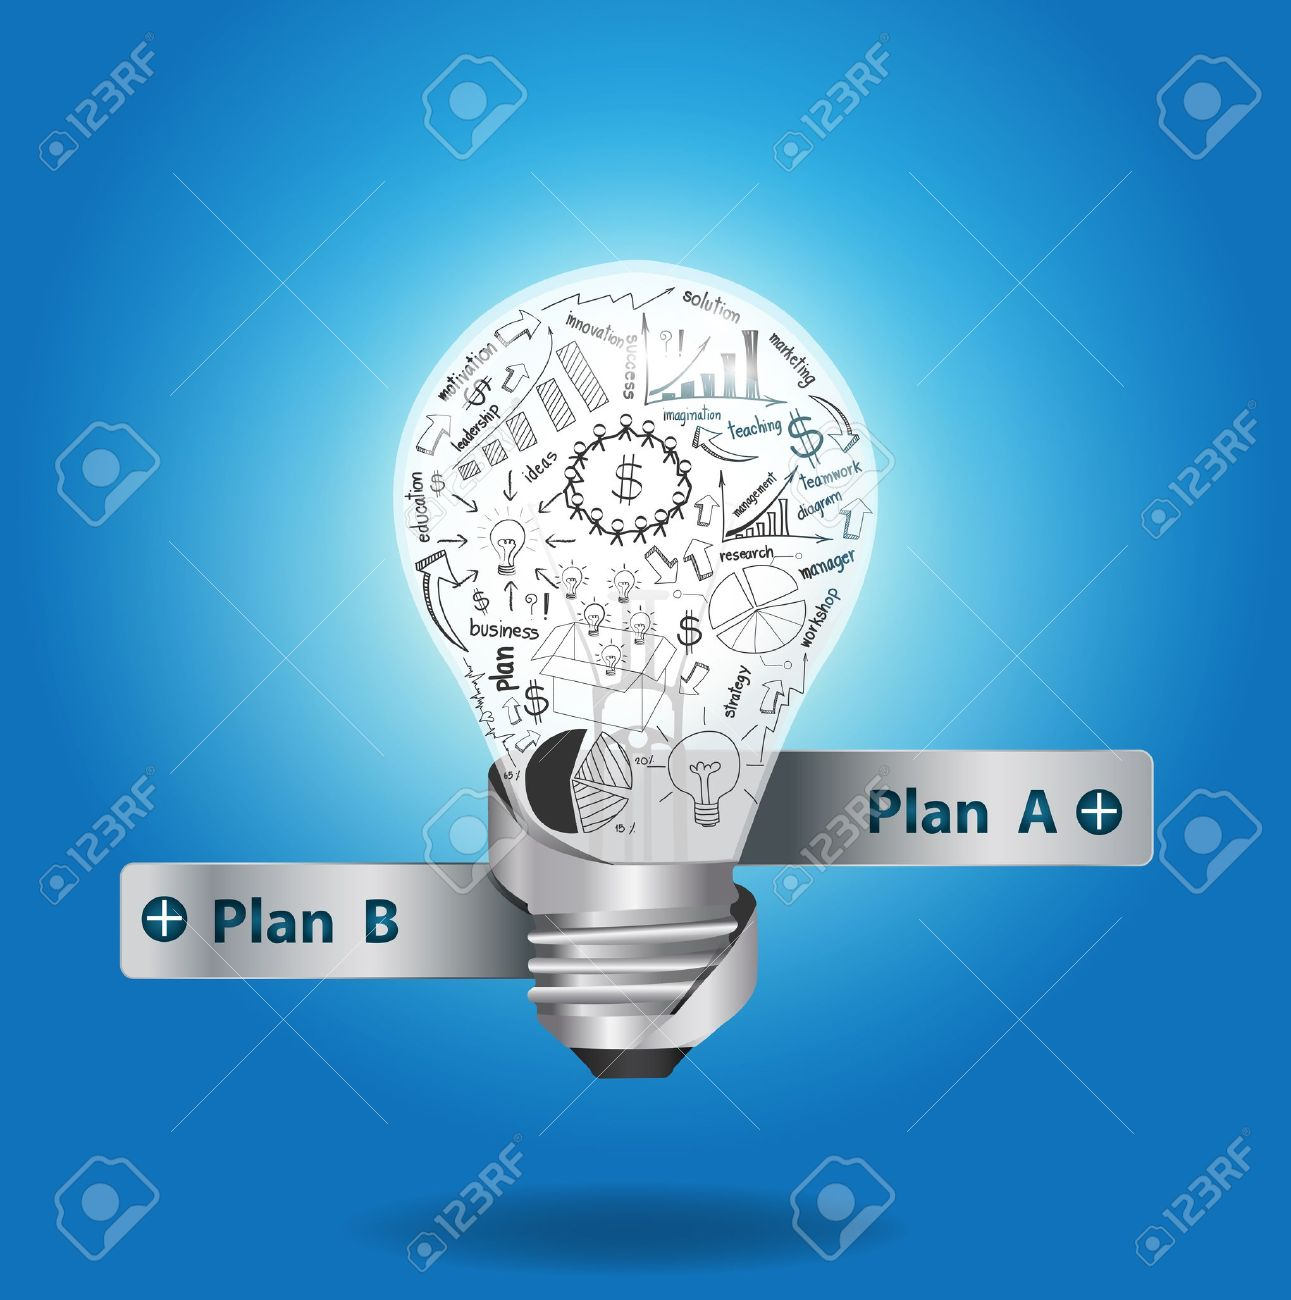 Light bulb with drawing graphs and charts inside, Creative business plan strategy concept idea. Stock Vector - 19152082